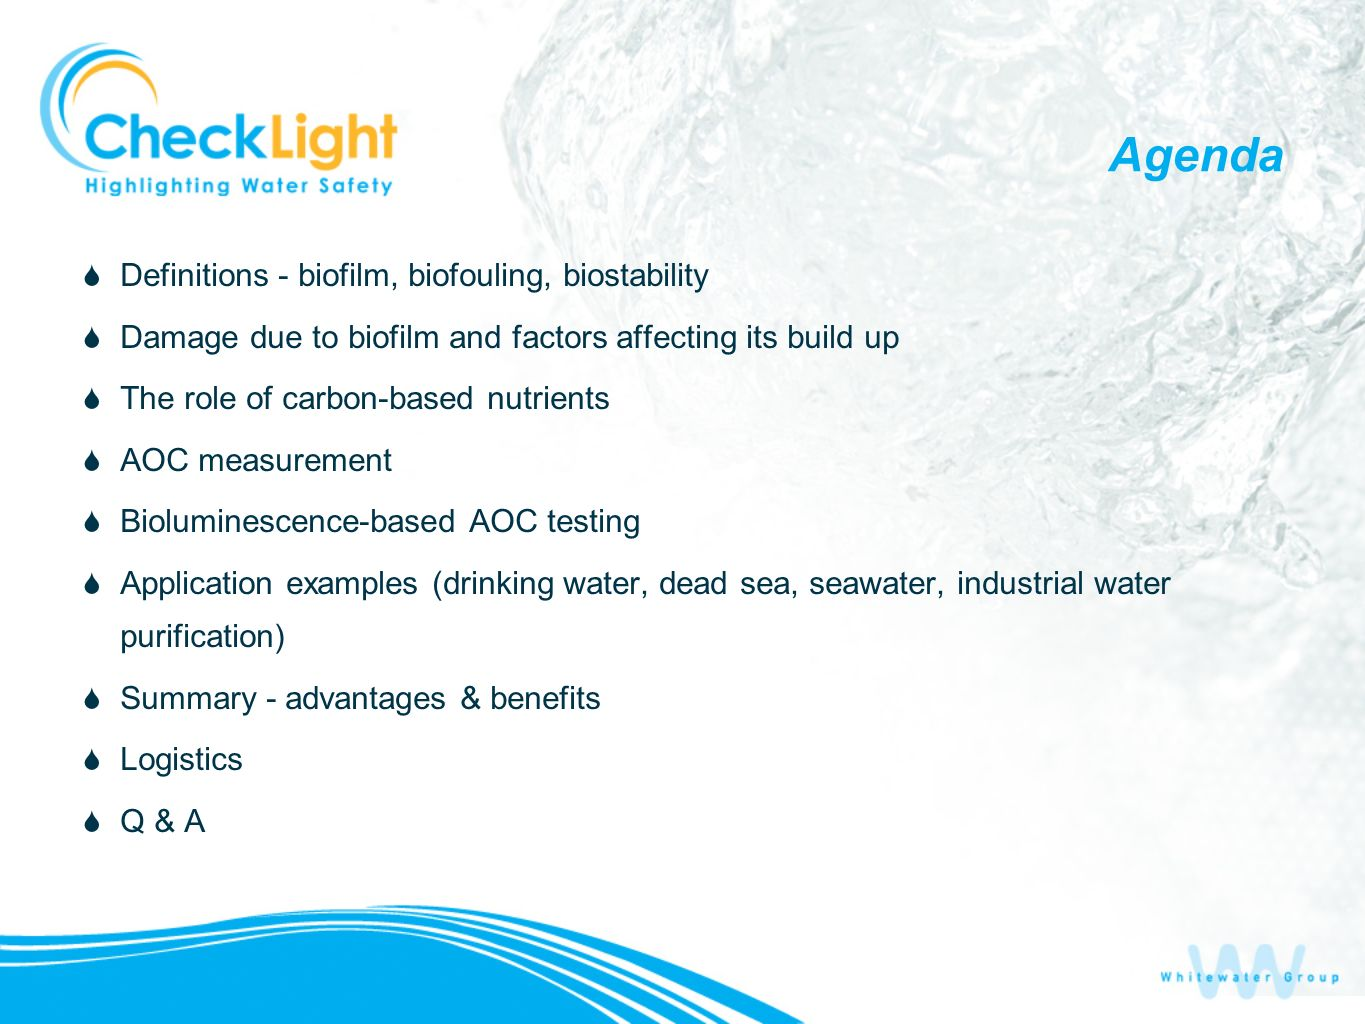 Agenda Definitions - biofilm, biofouling, biostability Damage due to biofilm and factors affecting its build up The role of carbon-based nutrients AOC